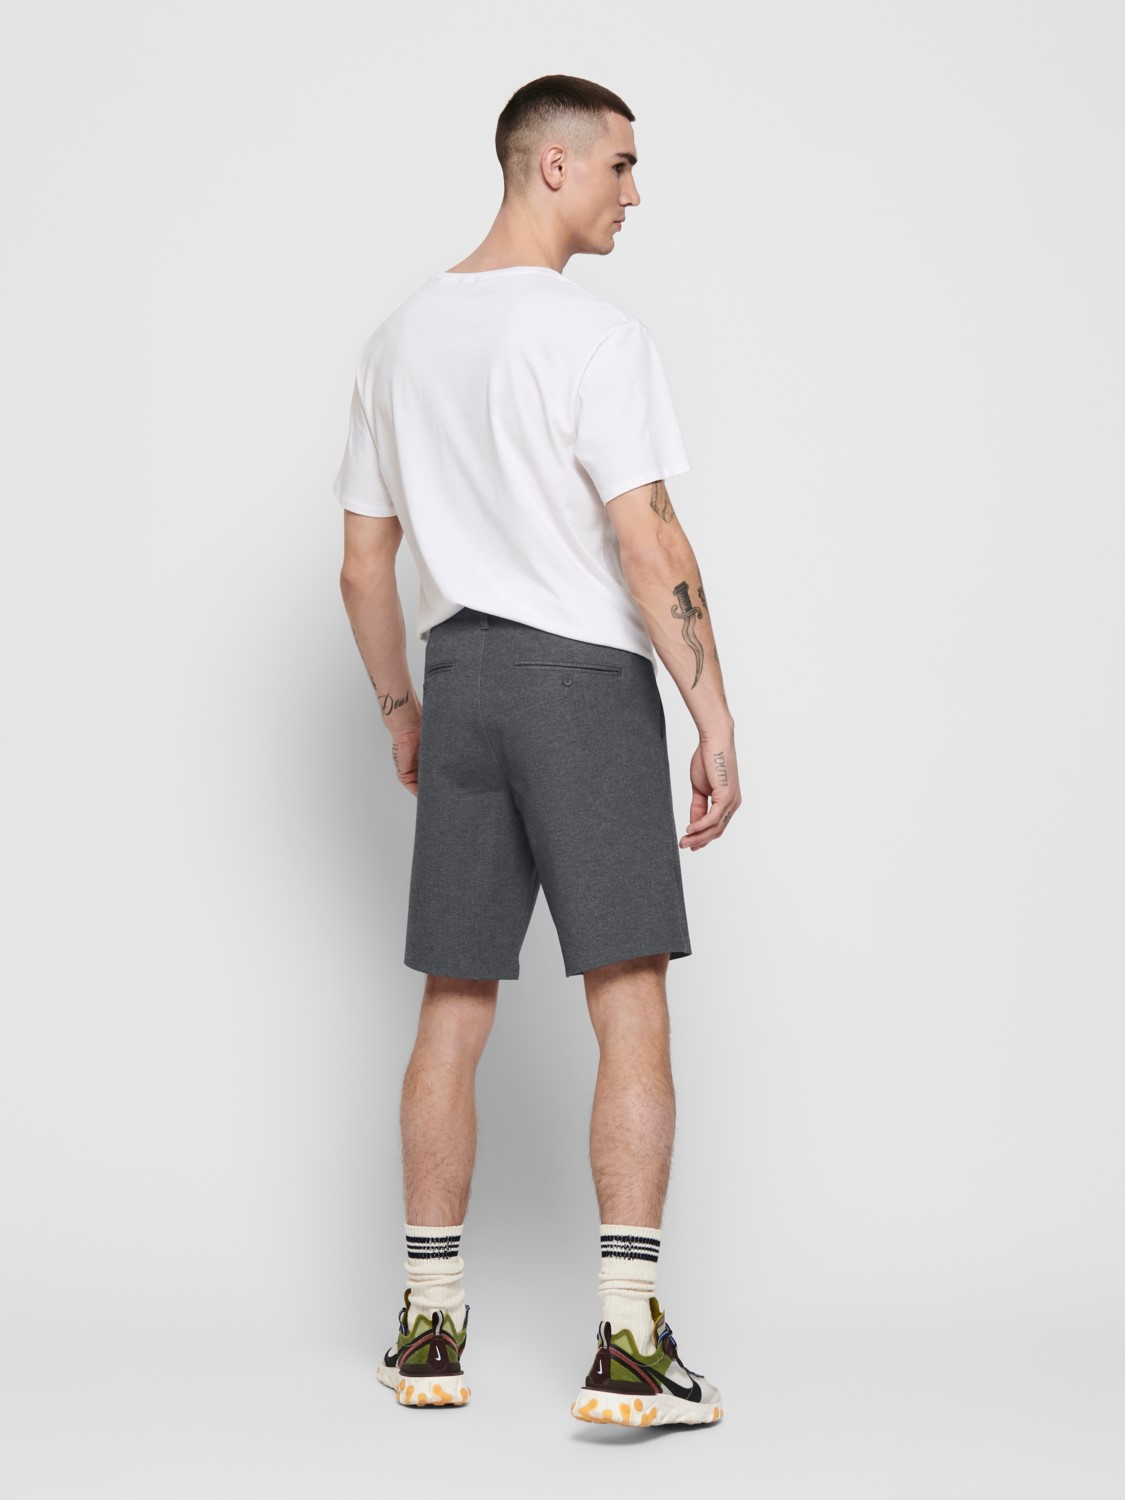 ONLY & SONS - OnsMark Shorts AOP | GATE 36 Hobro